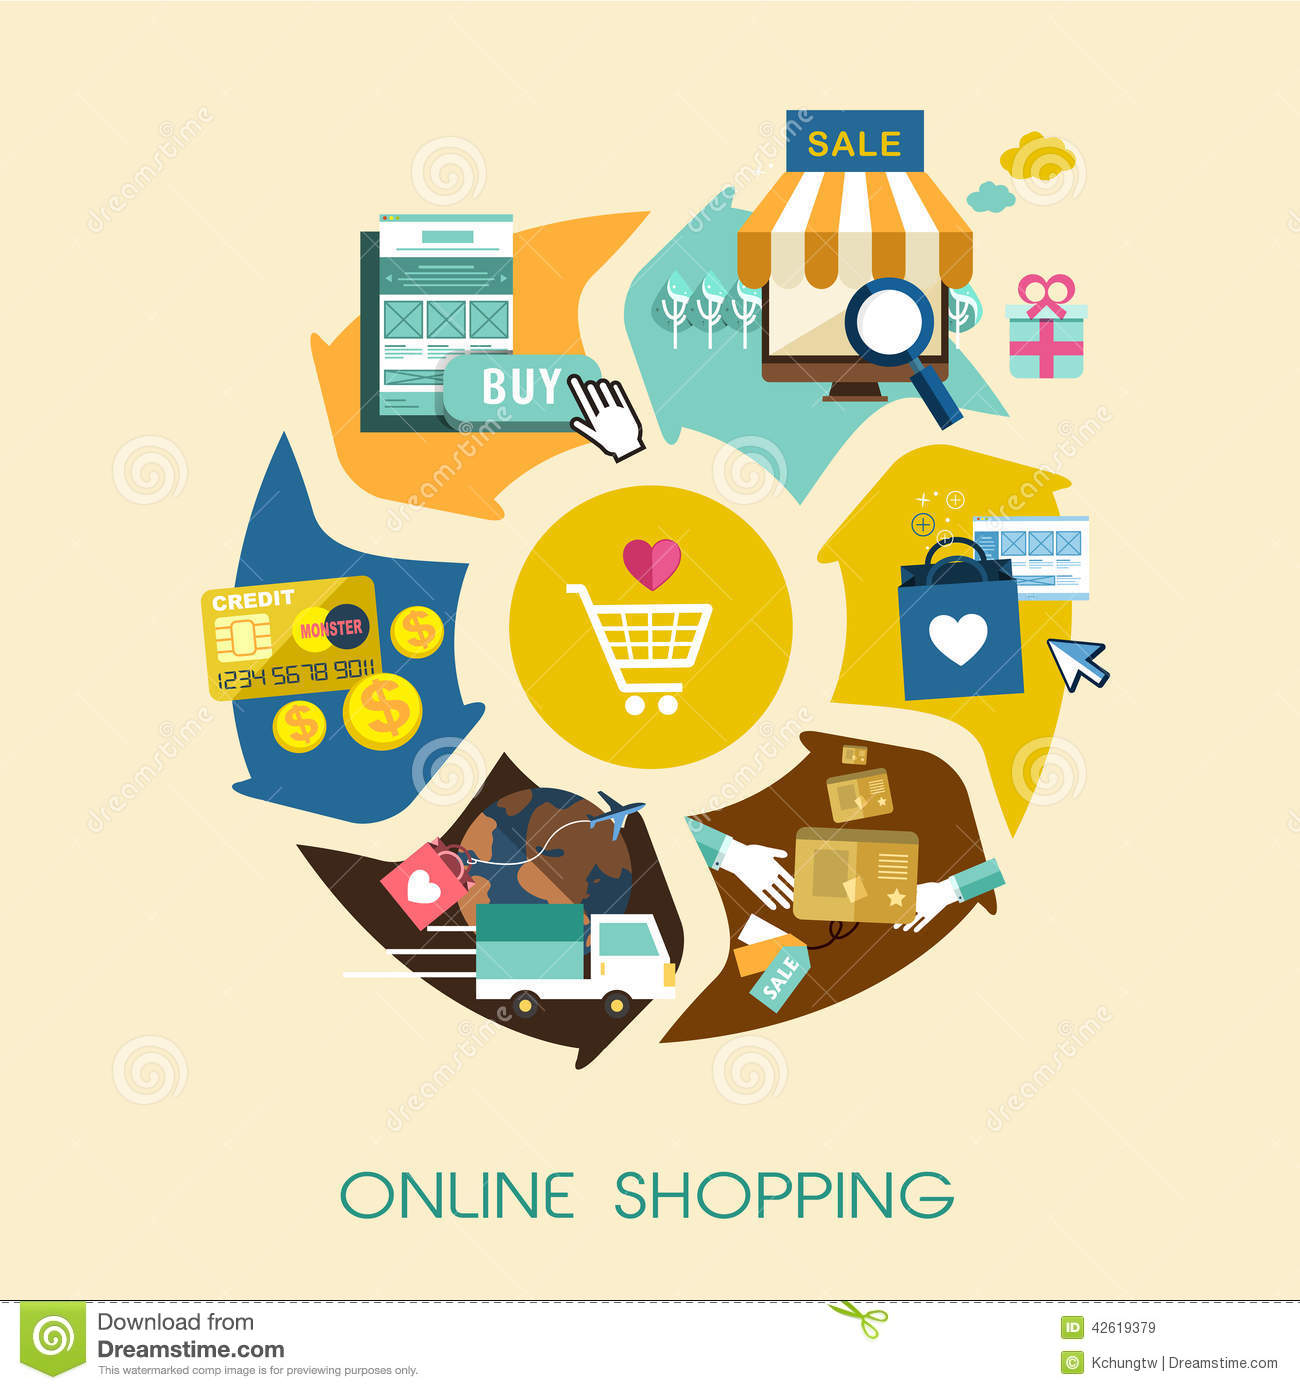 Online shopping process concept in flat design stock for Design online shop